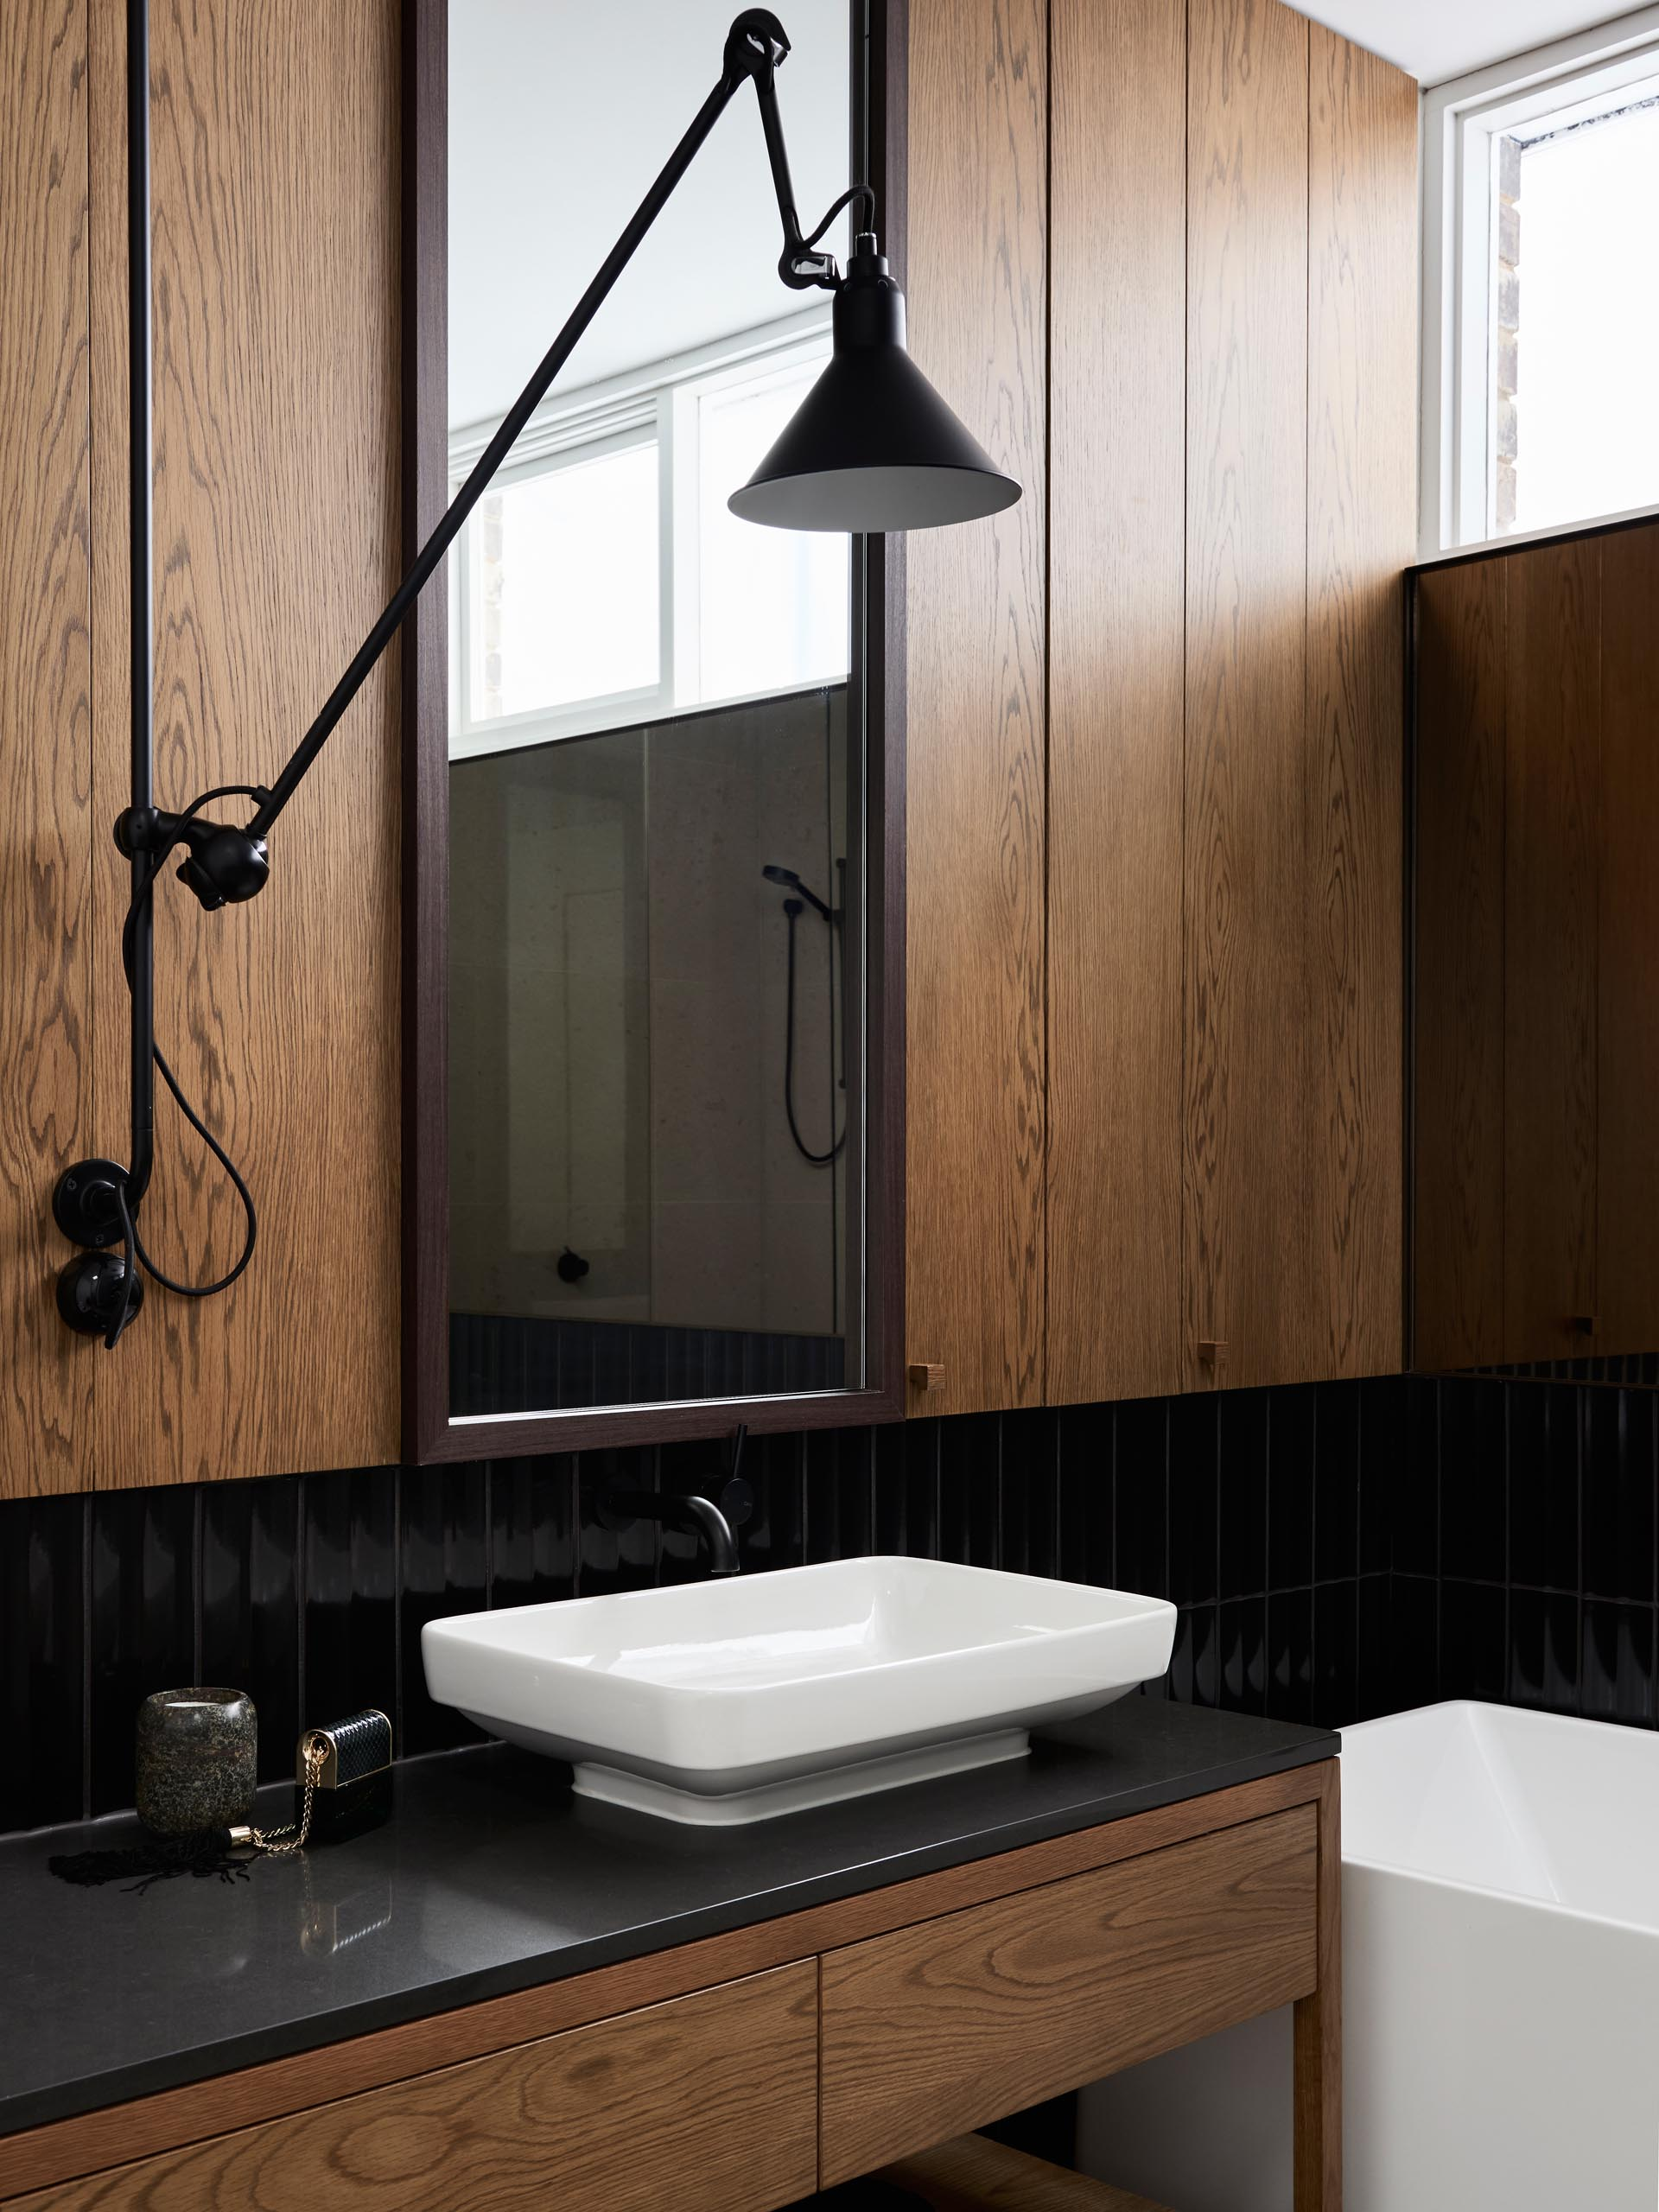 In this modern bathroom, wood paneling and a wood vanity have been paired with black tiles, a white vanity, and white bathtub.